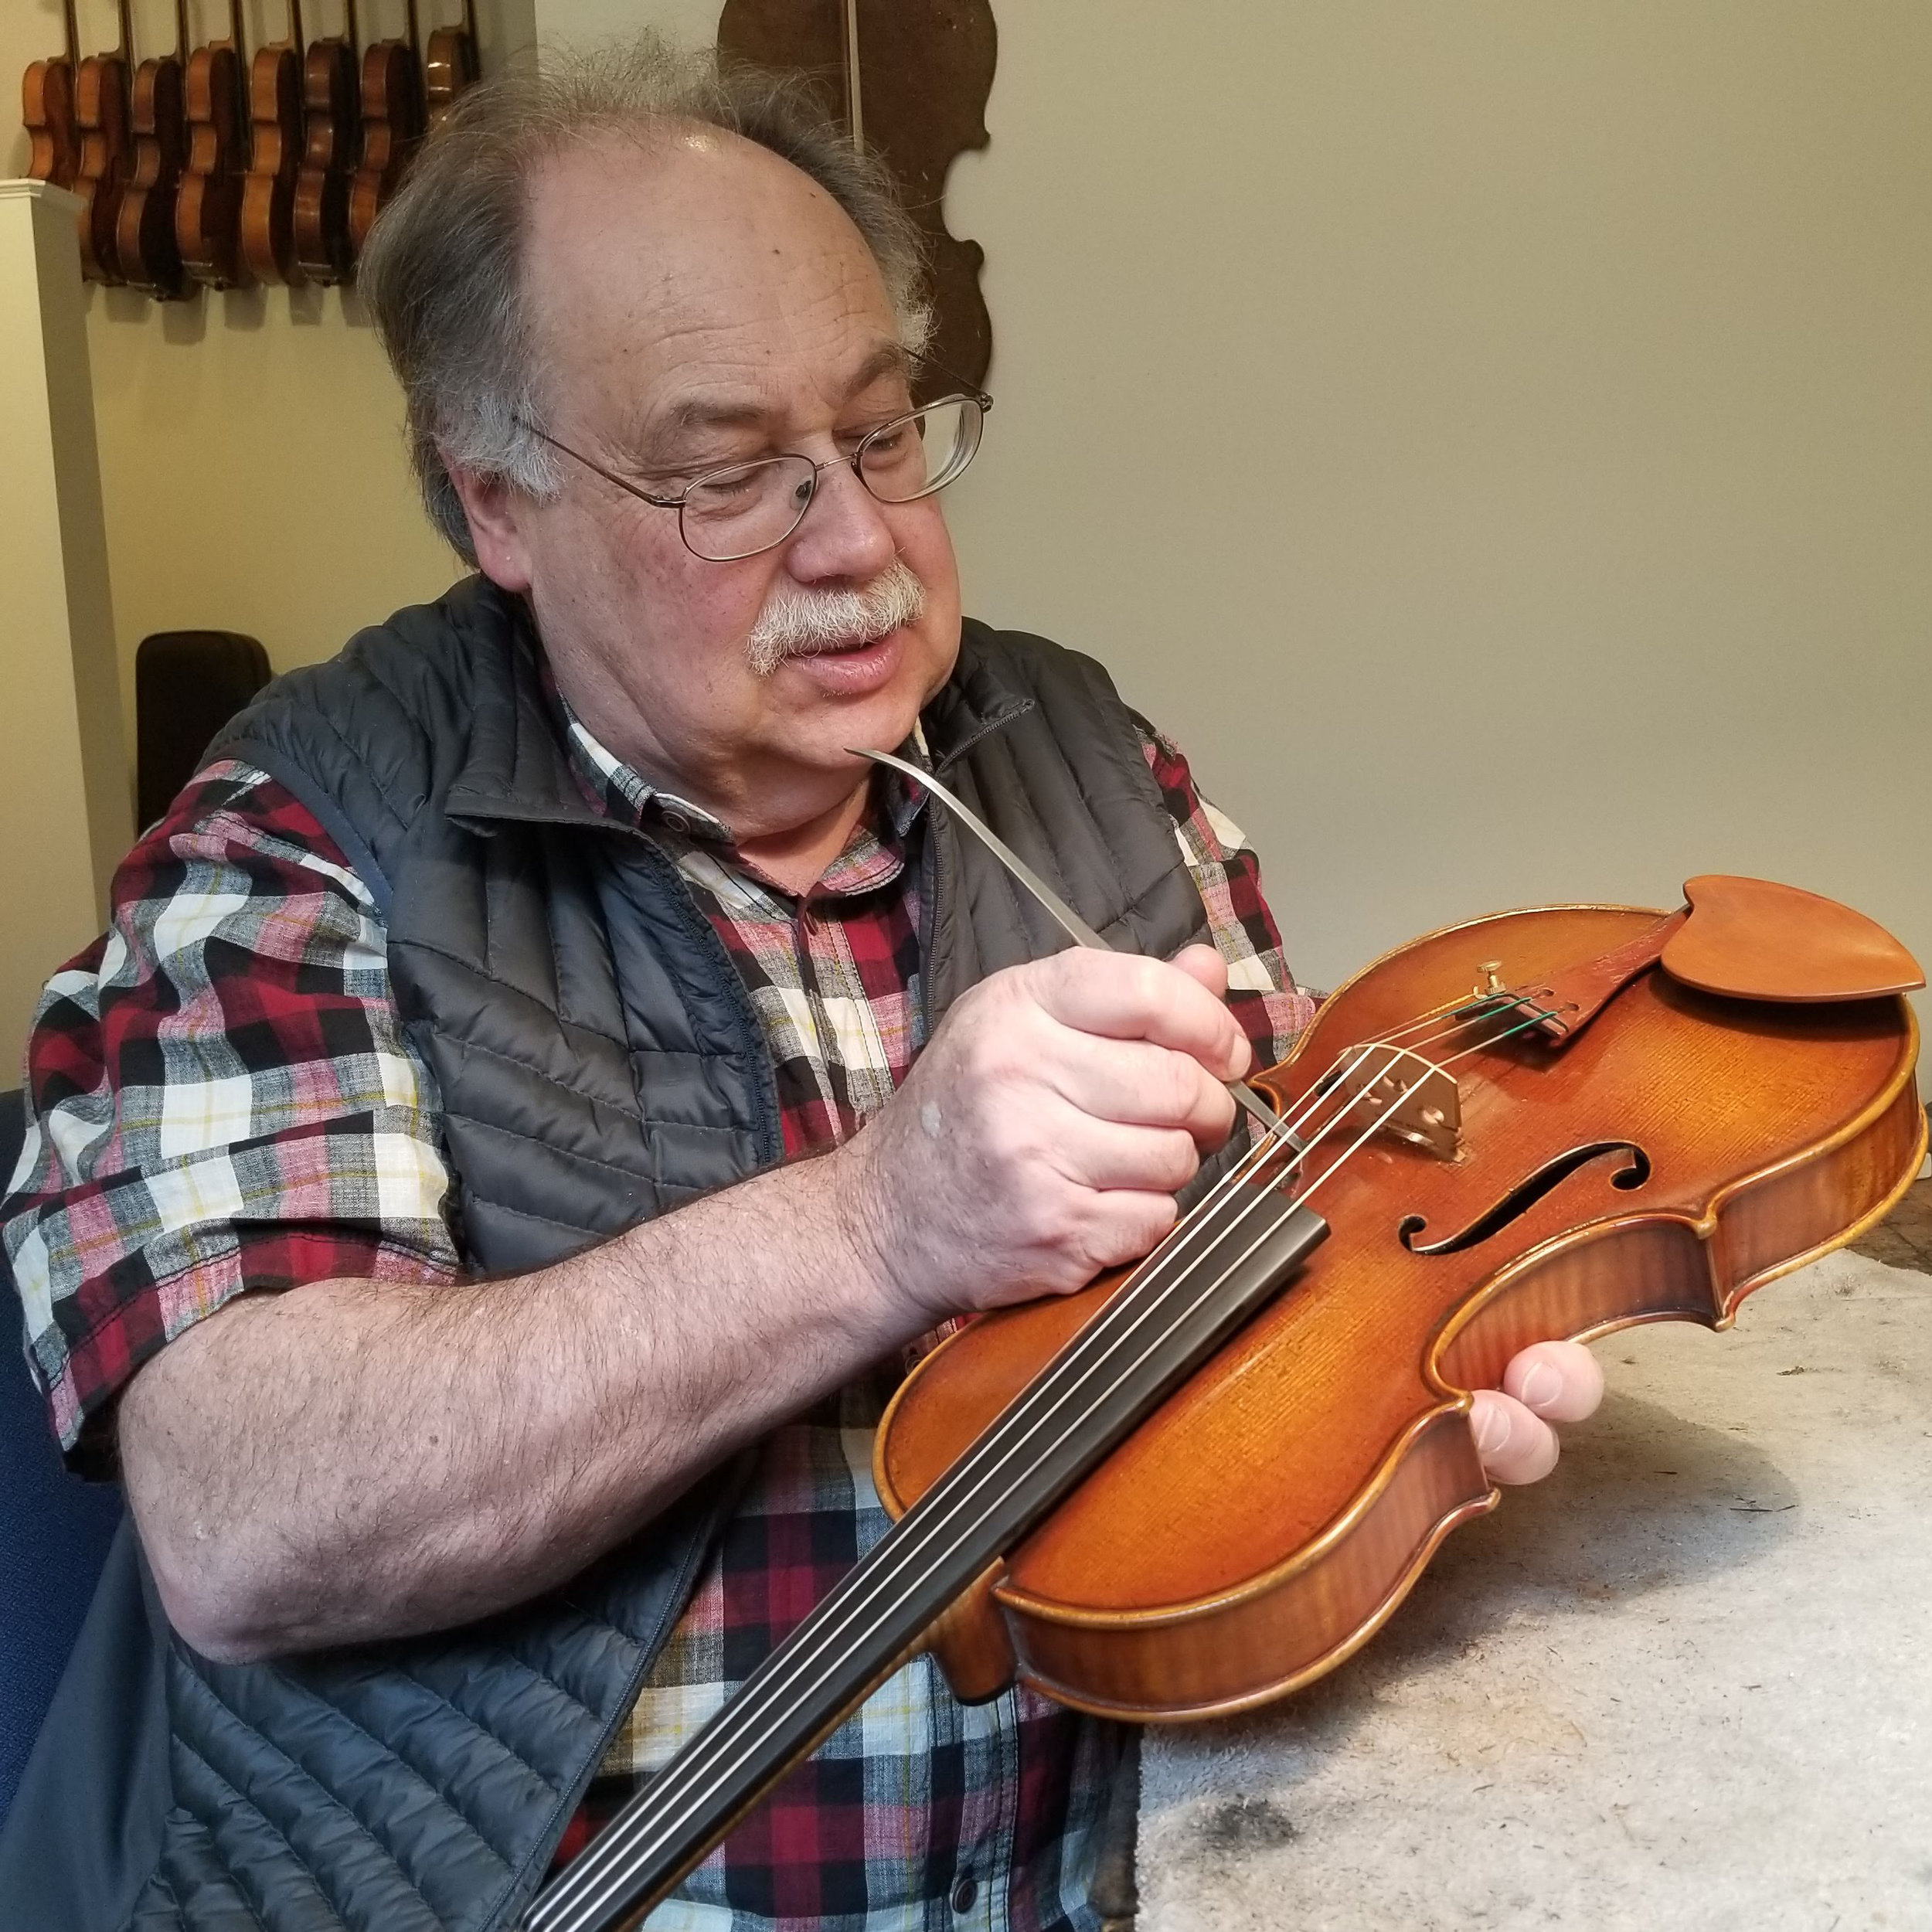 Paul Wiessmeyer - Paul Wiessmeyer has owned and operated a studio in Boston since 1990.Before opening Wiessmeyer Violins LLC, Paul trained at the violin making school in Mittenwald Germany. Upon graduation, in 1981, Paul worked for several violin shops in Europe and the US, most notably for Vladimir Pilar in Czechoslovakia and Hans Weisshaar in Hollywood, CA.During this period he honed his skills in repair, restoration, and sound adjustment, while continuing to make new instruments. Paul's instruments have received international recognition in competitions, most notably a gold medal at the H. Wienawski Violin Competition in Poland (1981), and gold medals for violin, viola, and cello at the VSA International Violin Competition in Salt Lake City (1982/ hors concours).Throughout his career, Paul has placed a strong emphasis on delivering quality craftsmanship and services tailored to the needs of his clients at affordable prices. In recent years, he has begun sharing his knowledge and expertise with others. In the summer, he teaches repair and set-up at the Violin Craftsmanship Institute of the University of New Hampshire and can now also be found instructing short seminars in the art of retouch across the US and Canada.